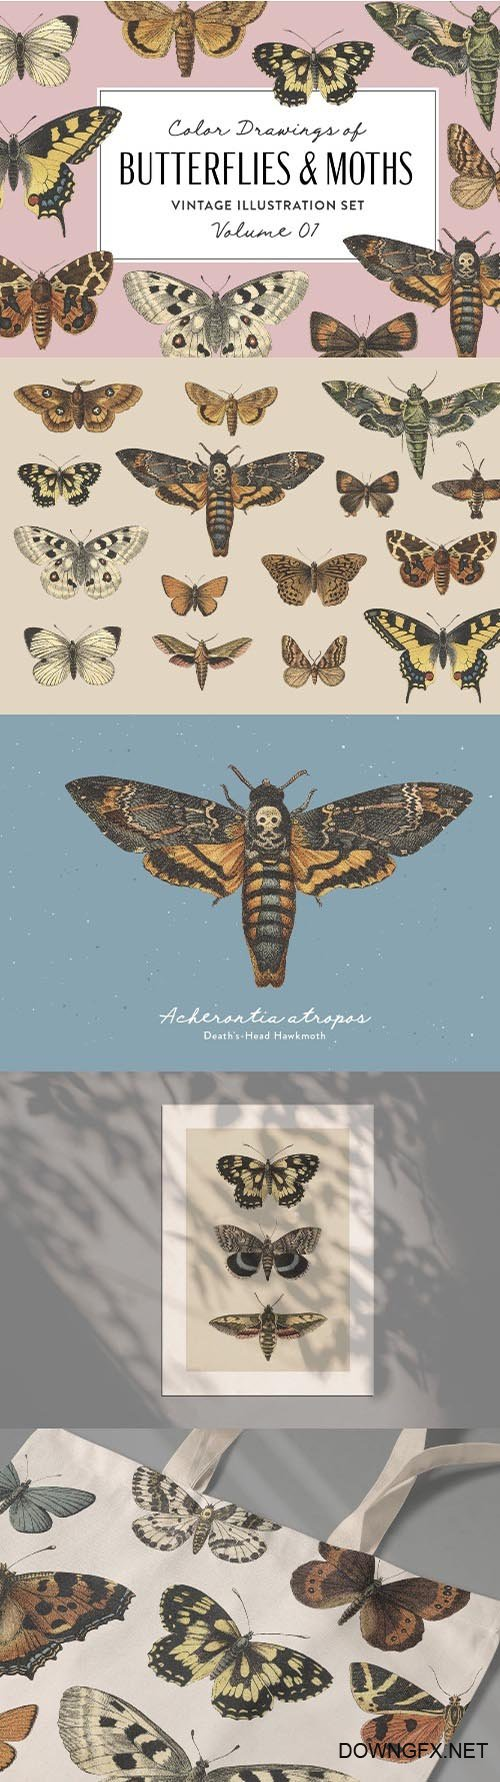 Butterflies & Moths Vintage Graphics Vol. 1 PNG